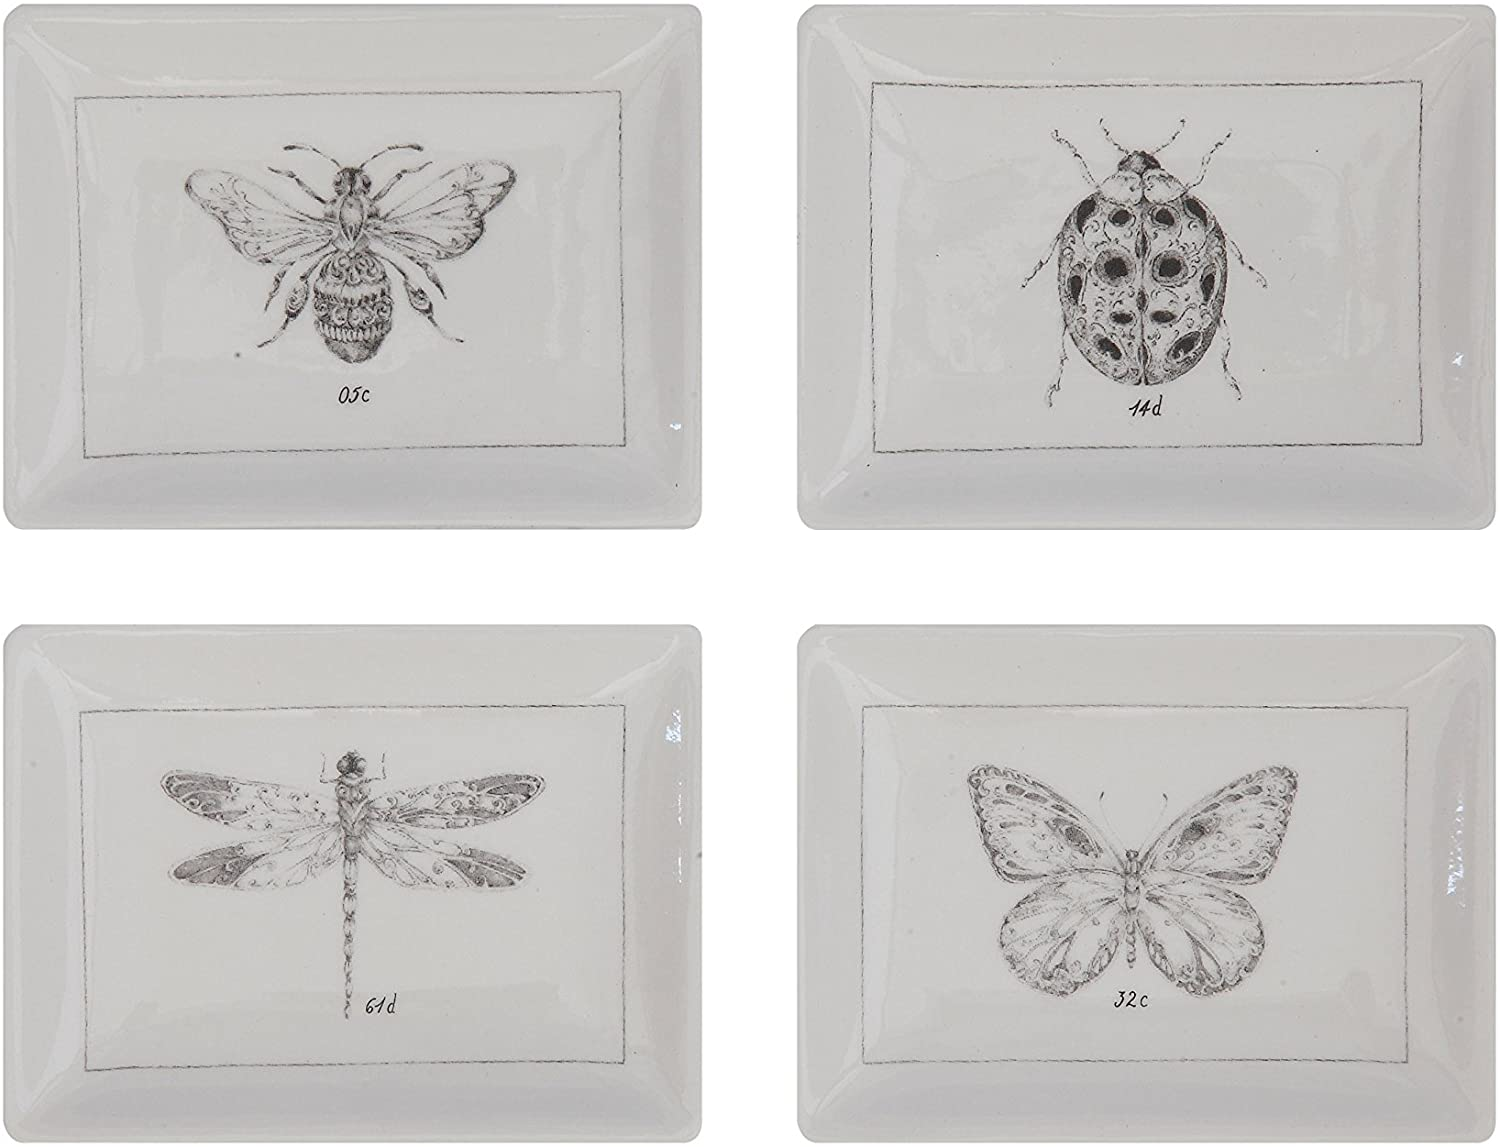 Creative Co-Op DA5737SET Set of 4 Rectangle White Ceramic Dishes with Insect Images